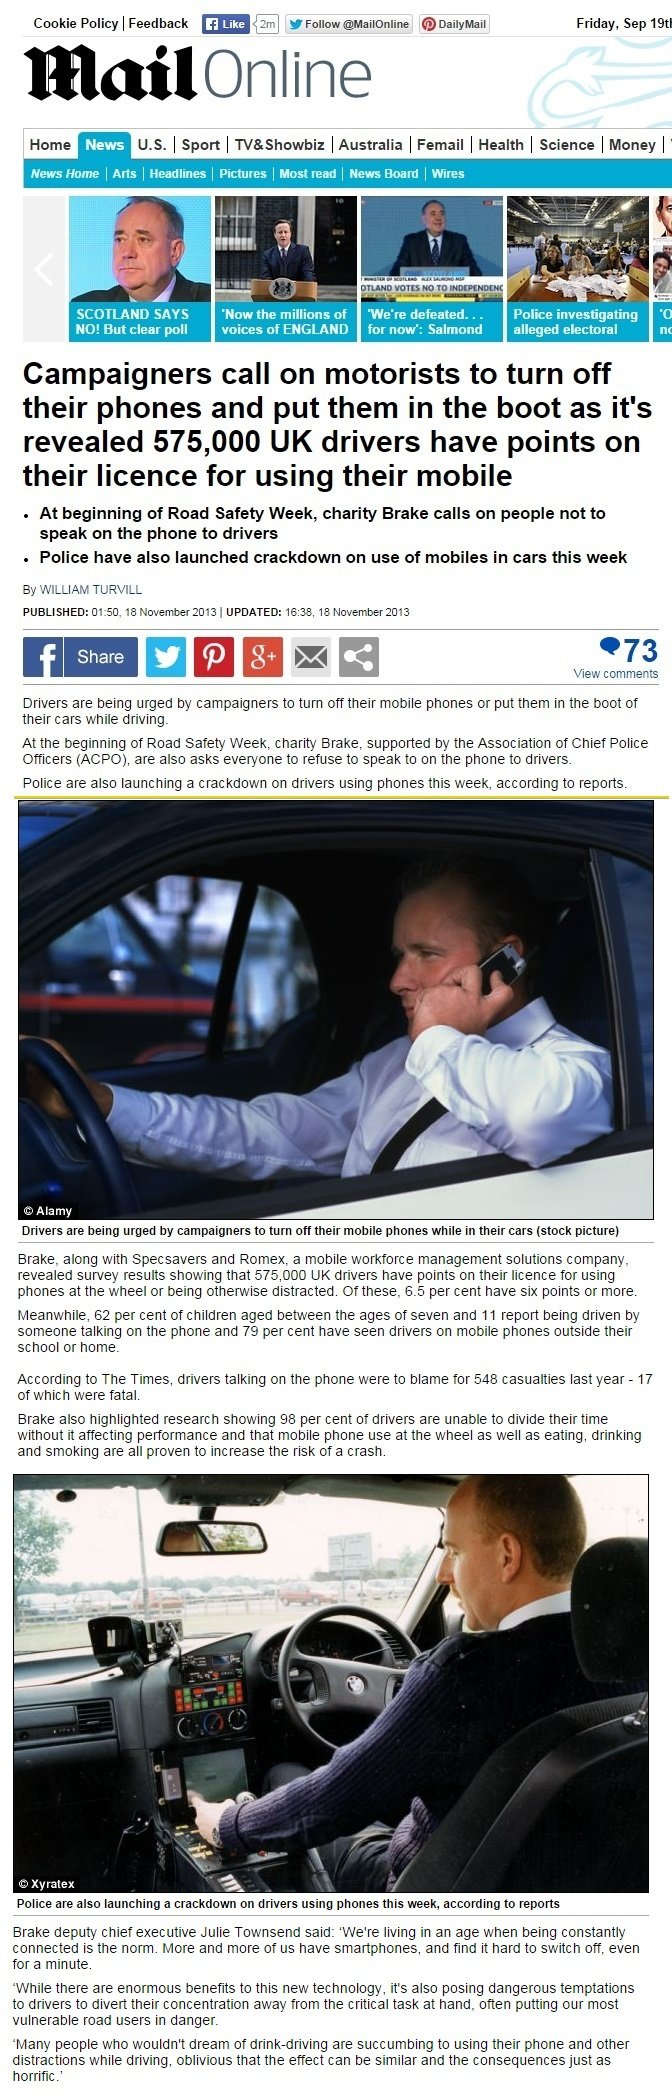 575,000 uk drivers have points from using phone while driving